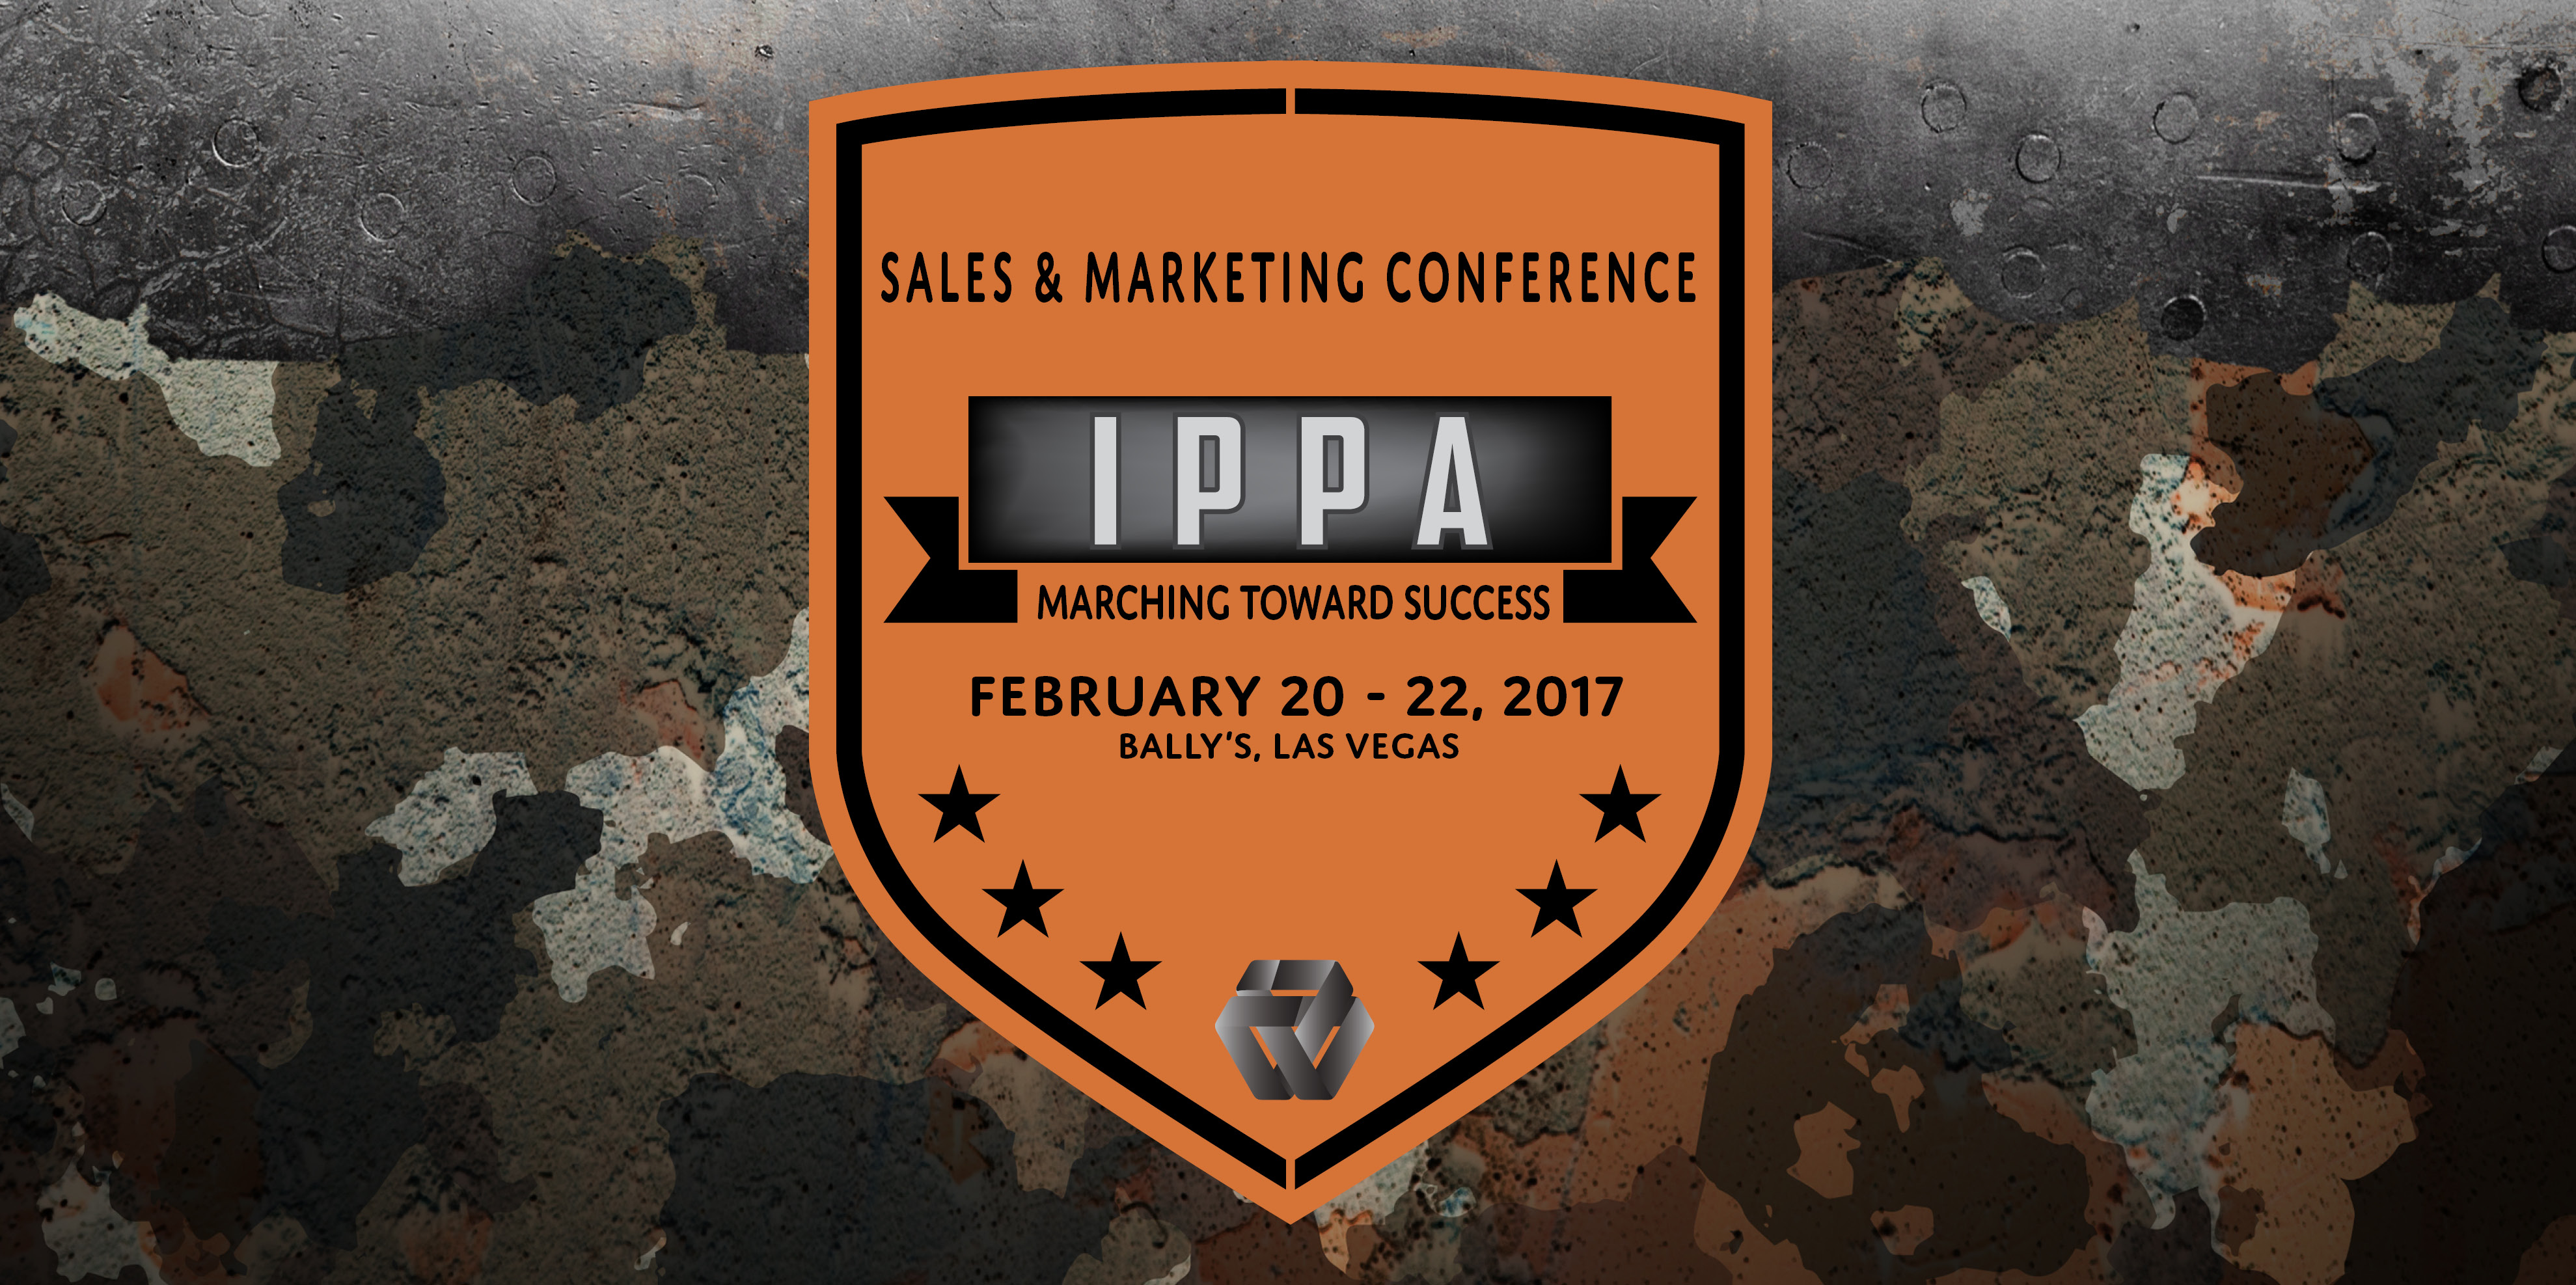 2017 IPPA Sales & Marketing Conference